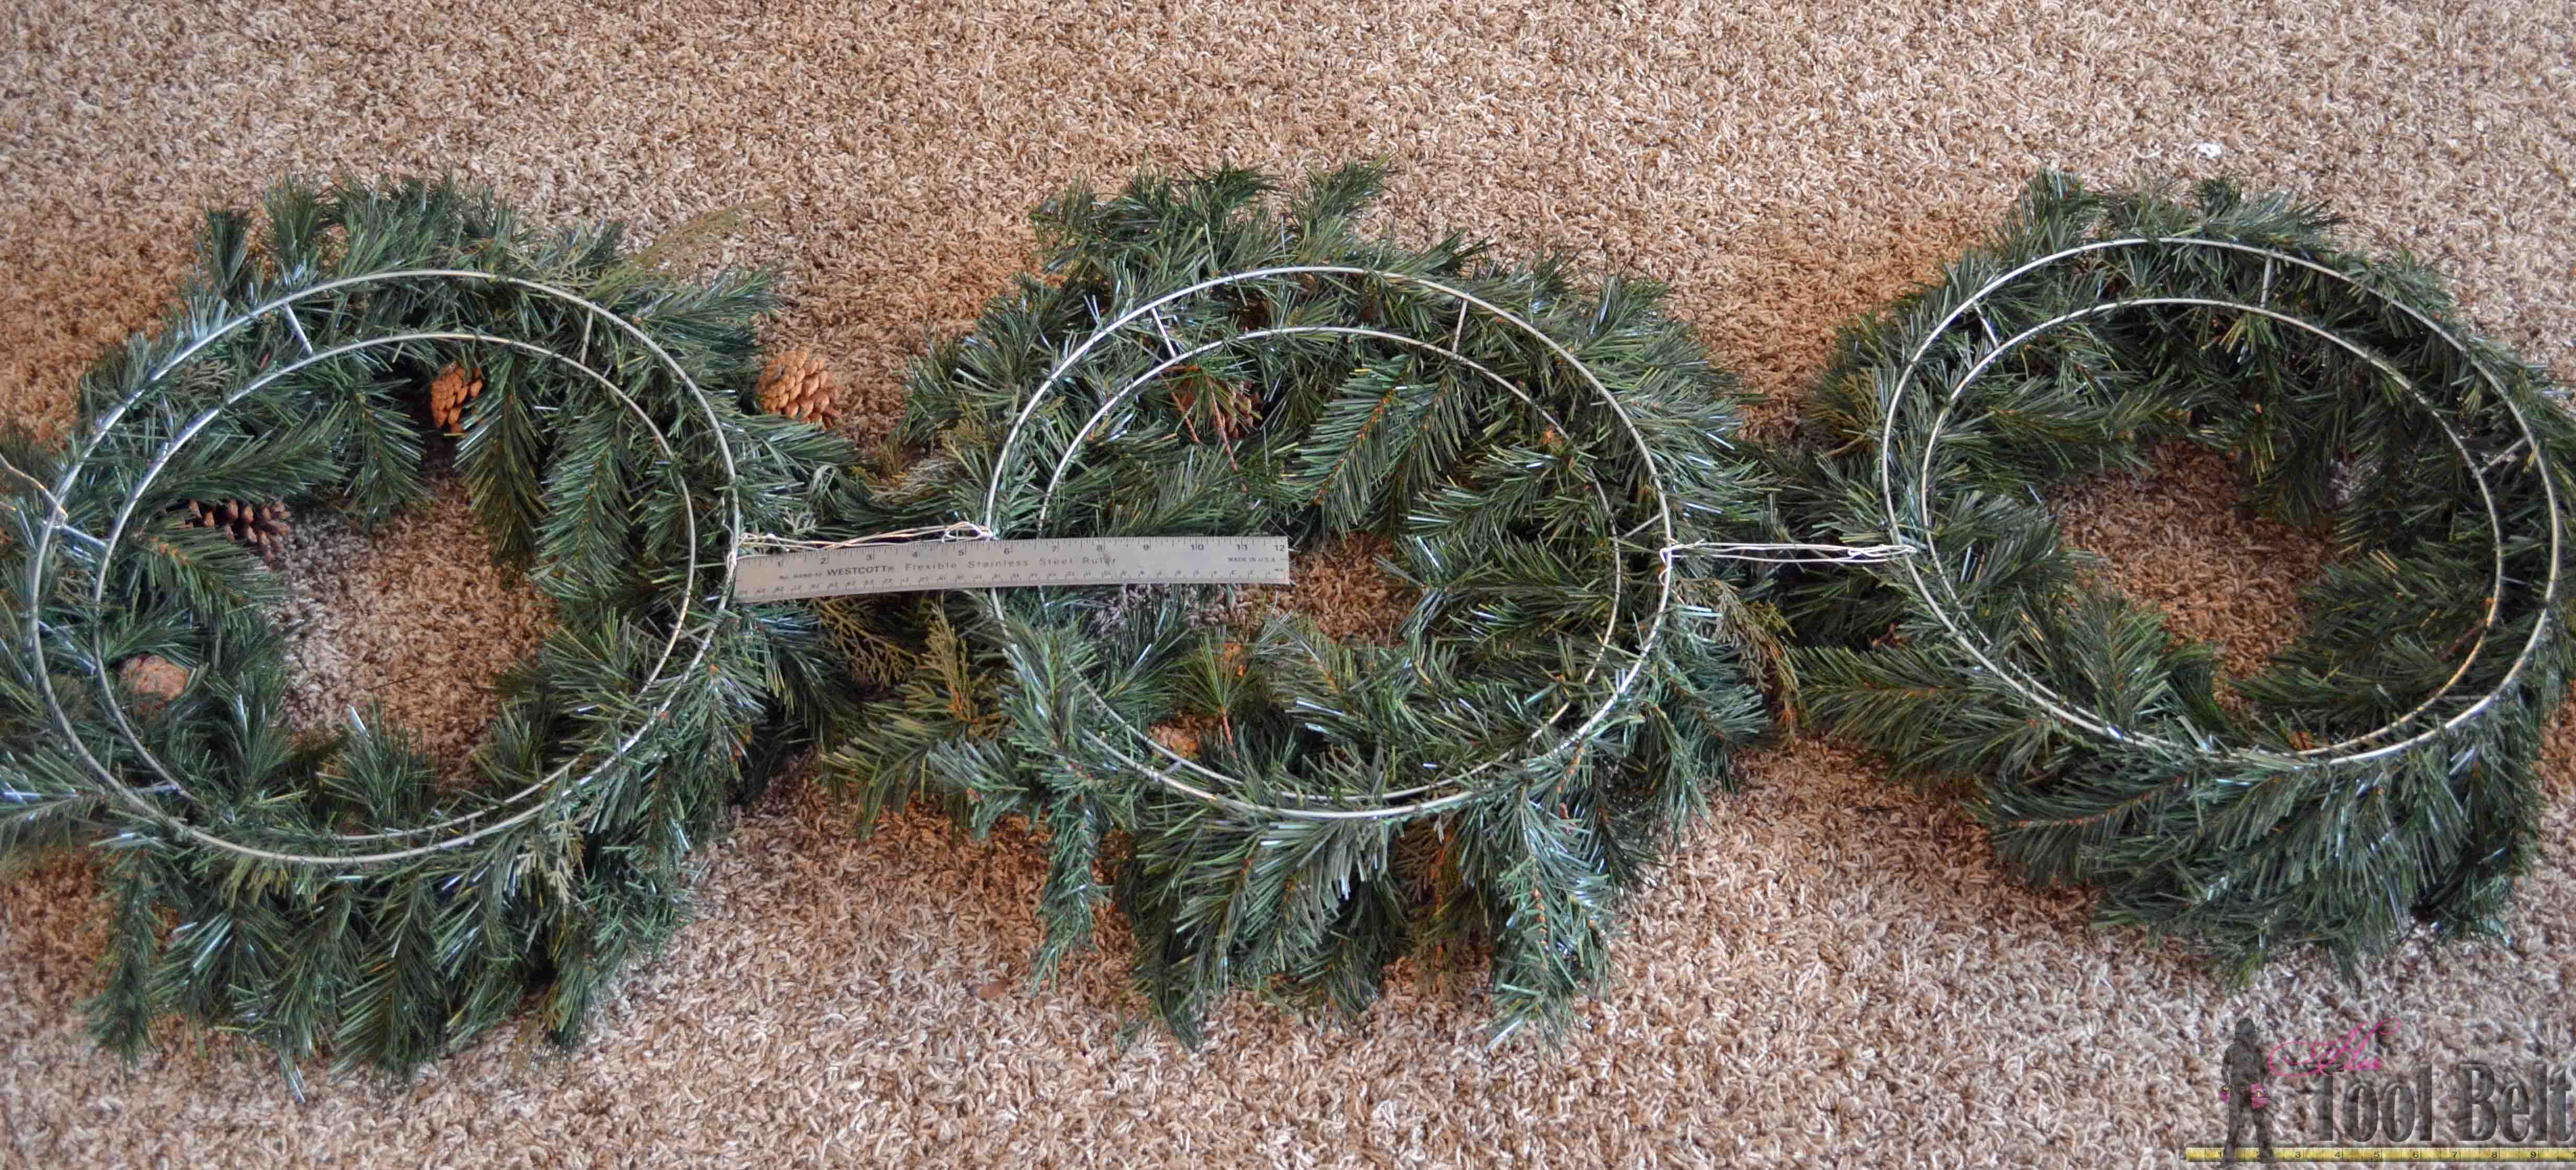 Merry And Bright Christmas Wreath Trio Her Tool Belt